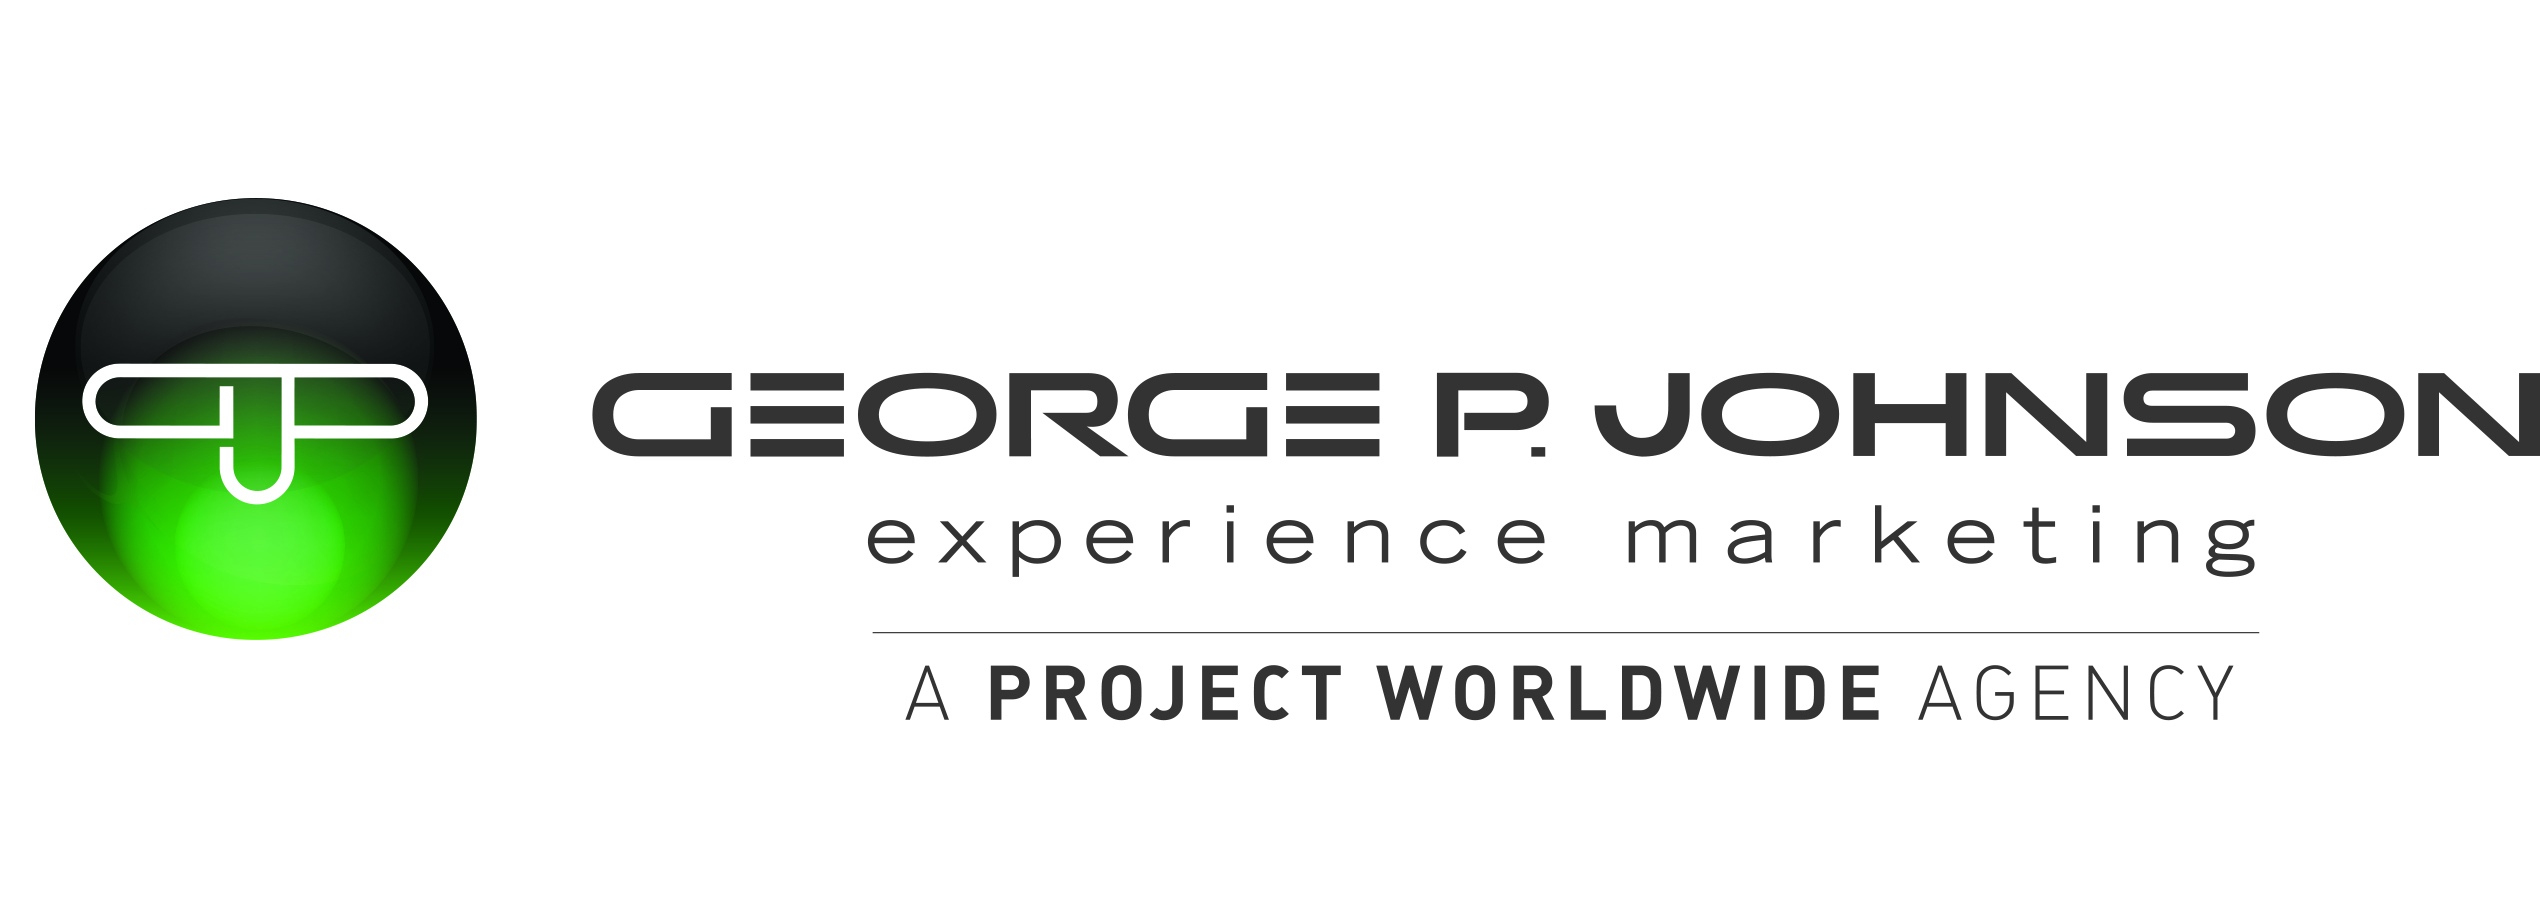 Senior Manager Registration (m/w/d) - Job Ostfildern Ruit - #GPJWORKDIFFERENT - Post offer form